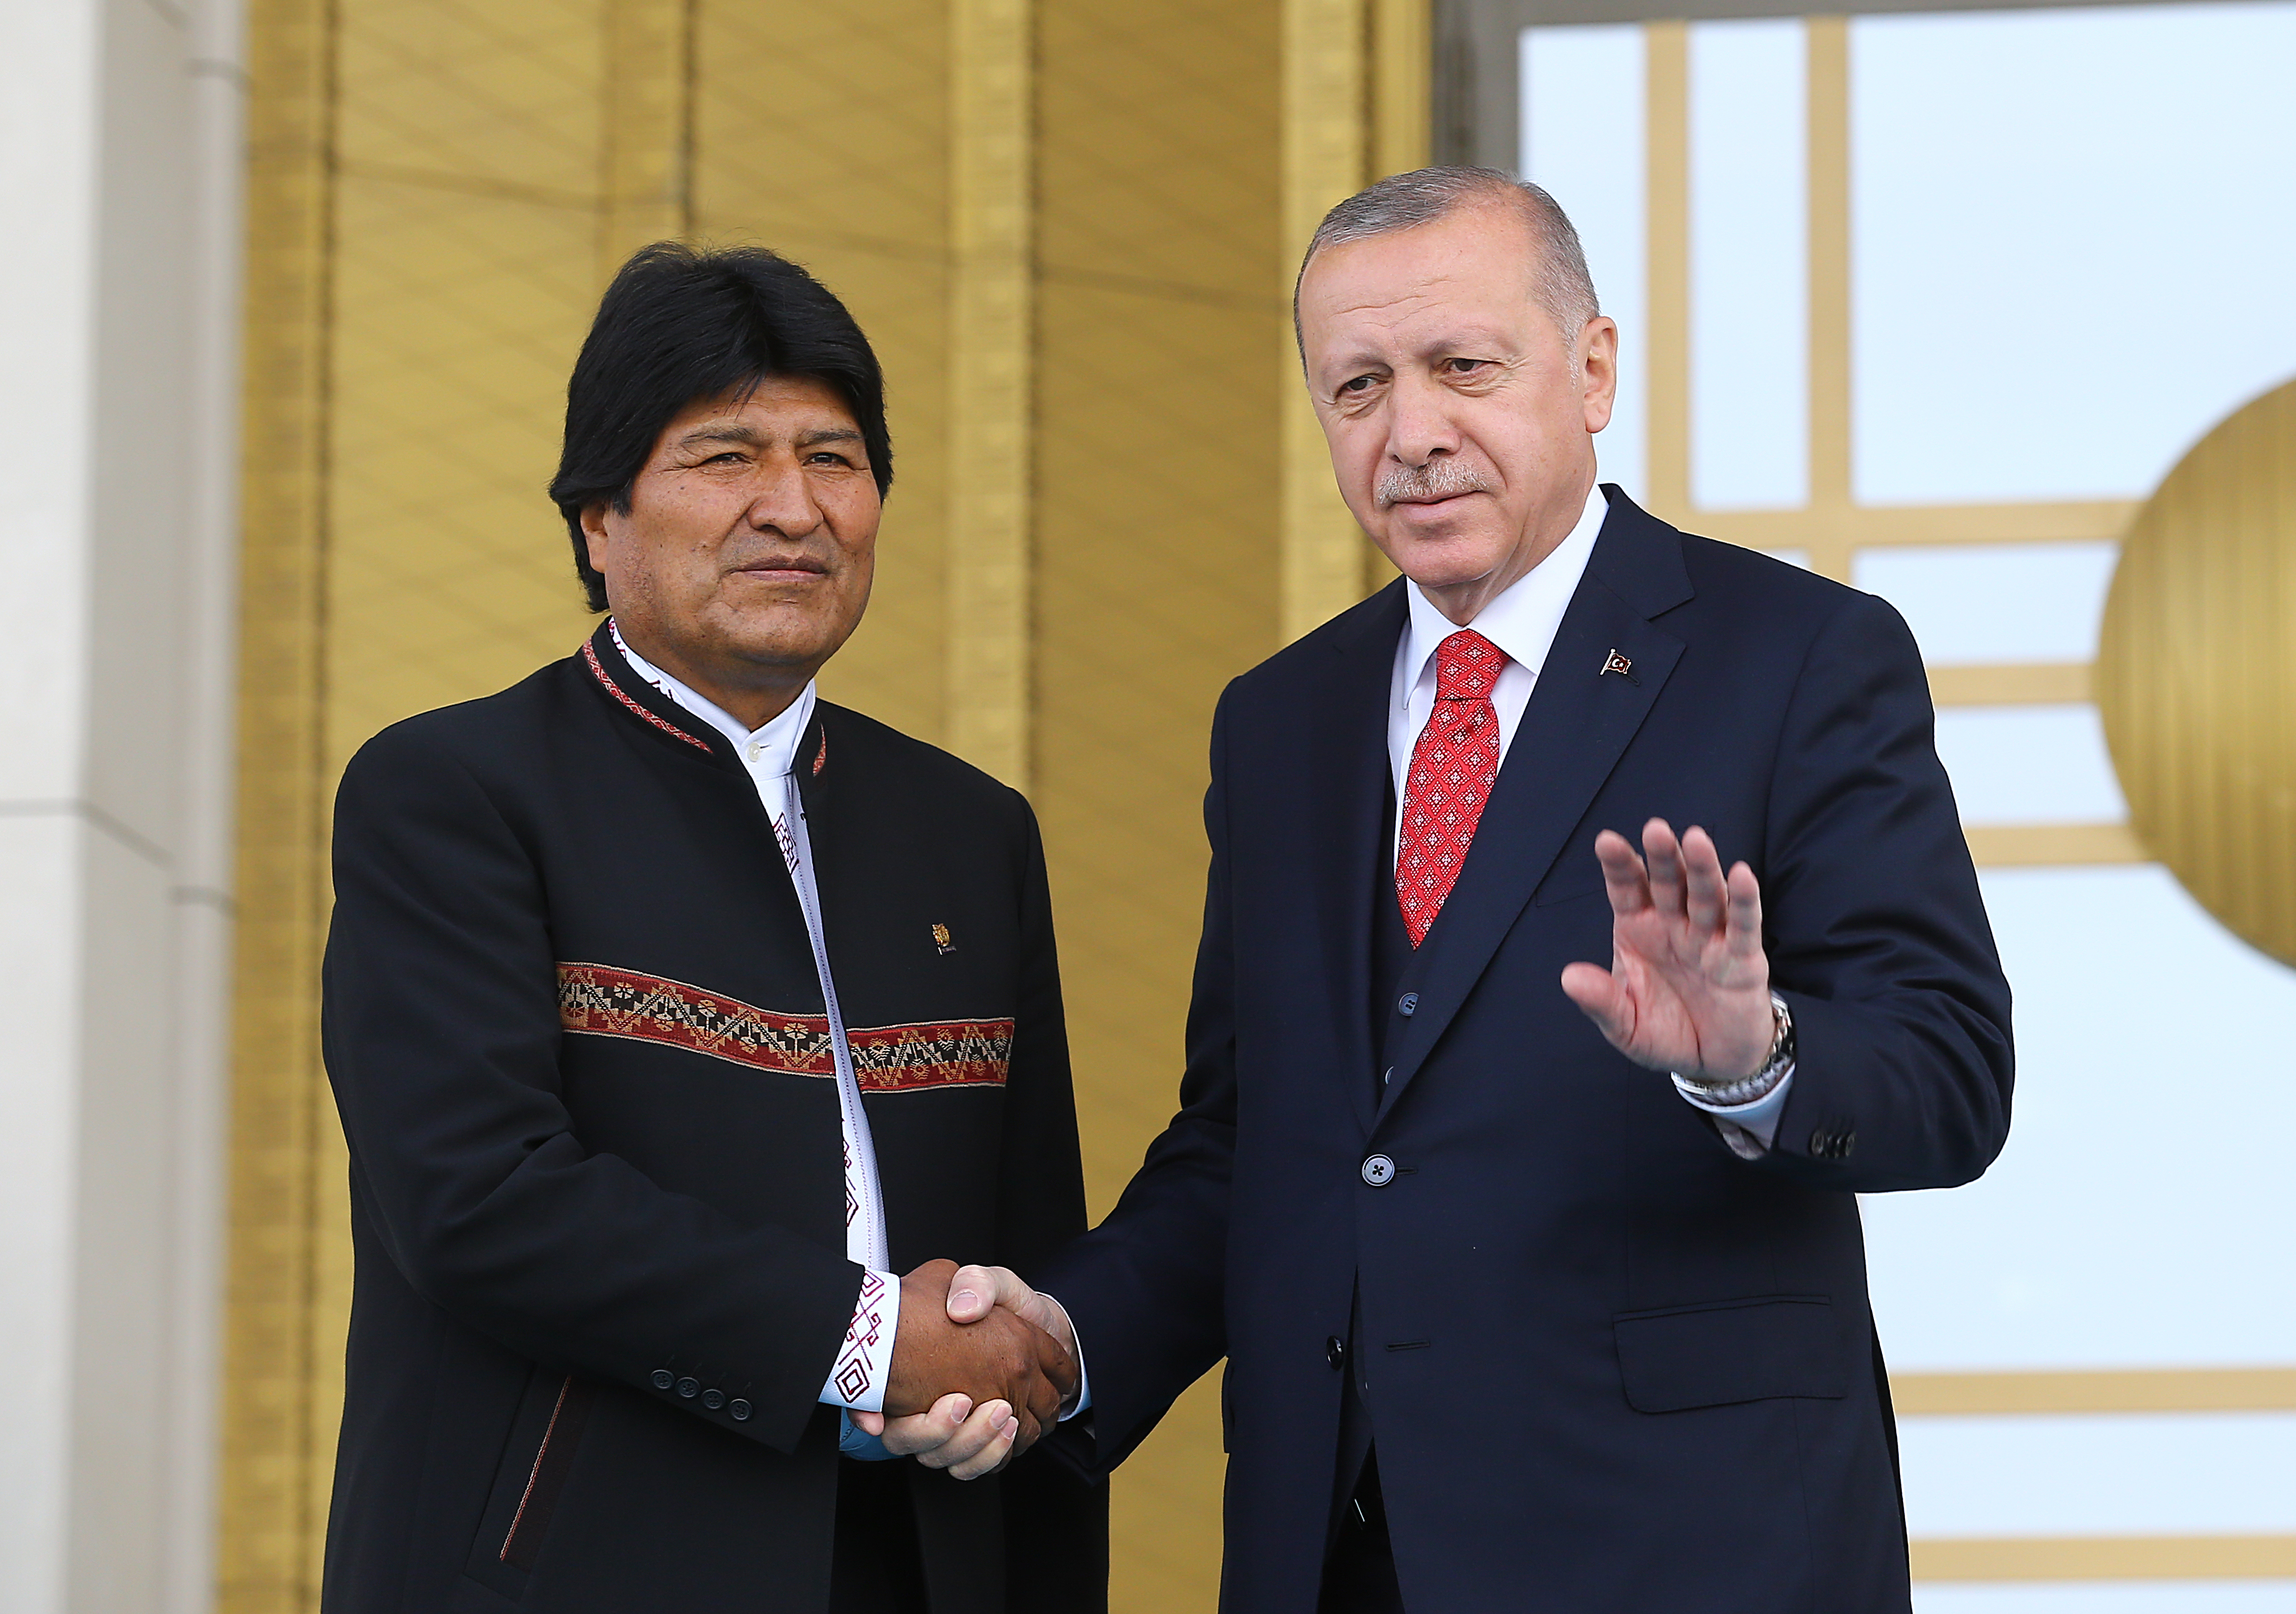 President Erdoğan met with President Evo Morales Ayma of the Plurinational State of Bolivia